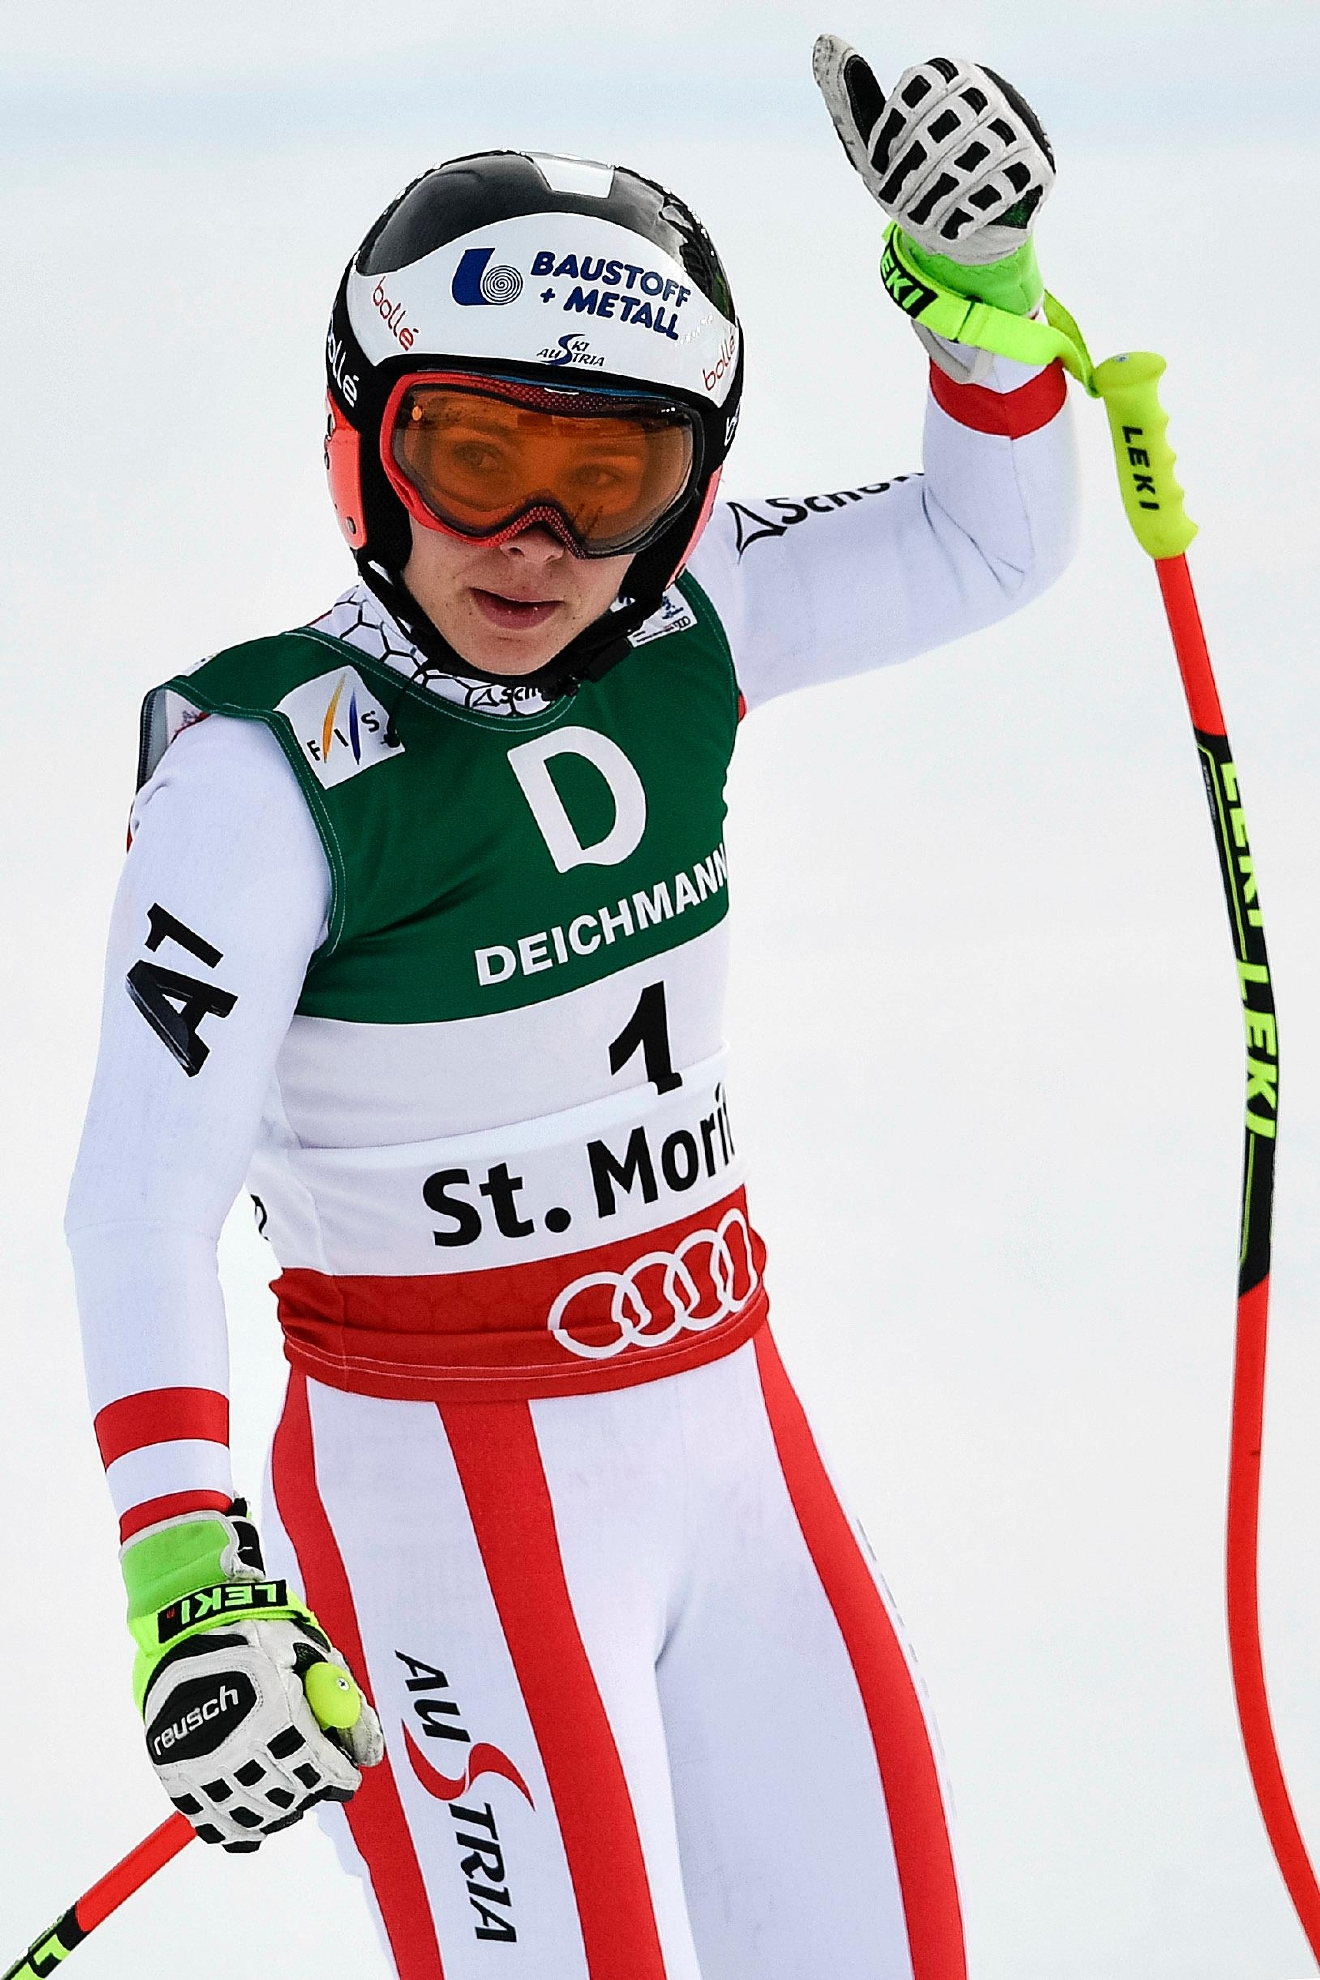 Nicole Schmidhofer of Austria reacts in the finish area during the women's downhill training at the 2017 Alpine Skiing World Championships in St. Moritz, Switzerland, Wednesday, Feb. 8, 2017. (Peter Schneider/Keystone via AP)